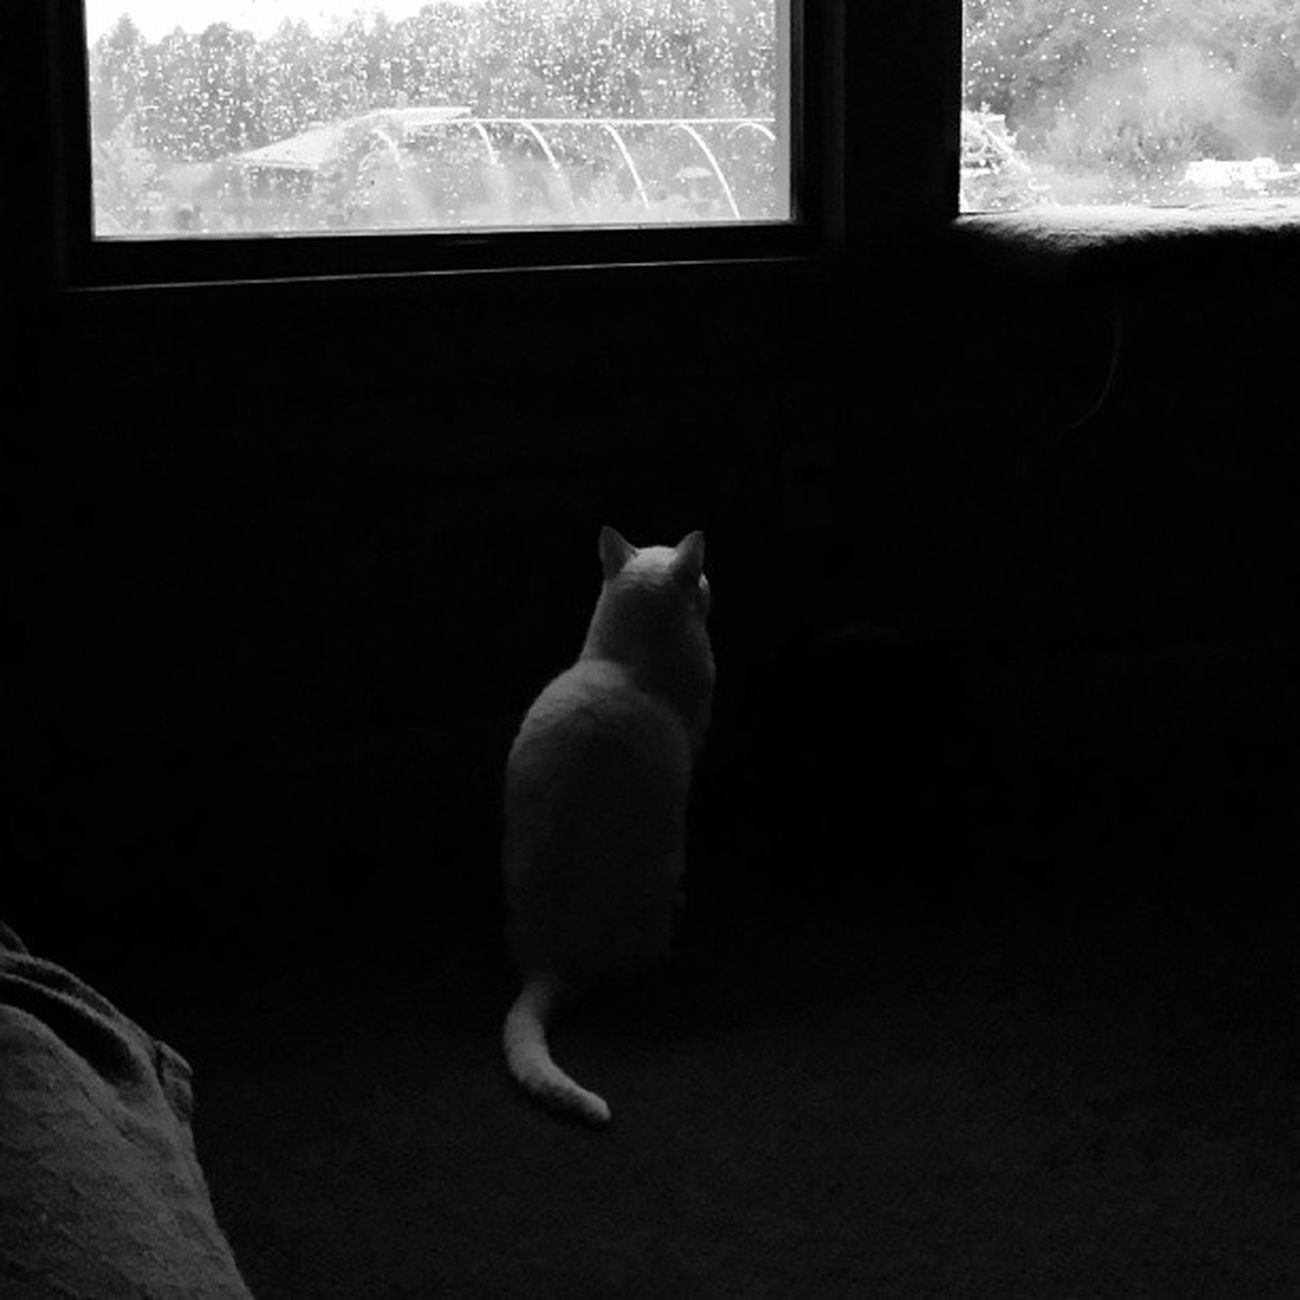 The cat has been staring out the window in this position for 30 minutes. Beginning to freak me out a bit. Petsofinstagram Catsofinstagram Instacat Instakitten blackandwhite goodmorning catsareweird